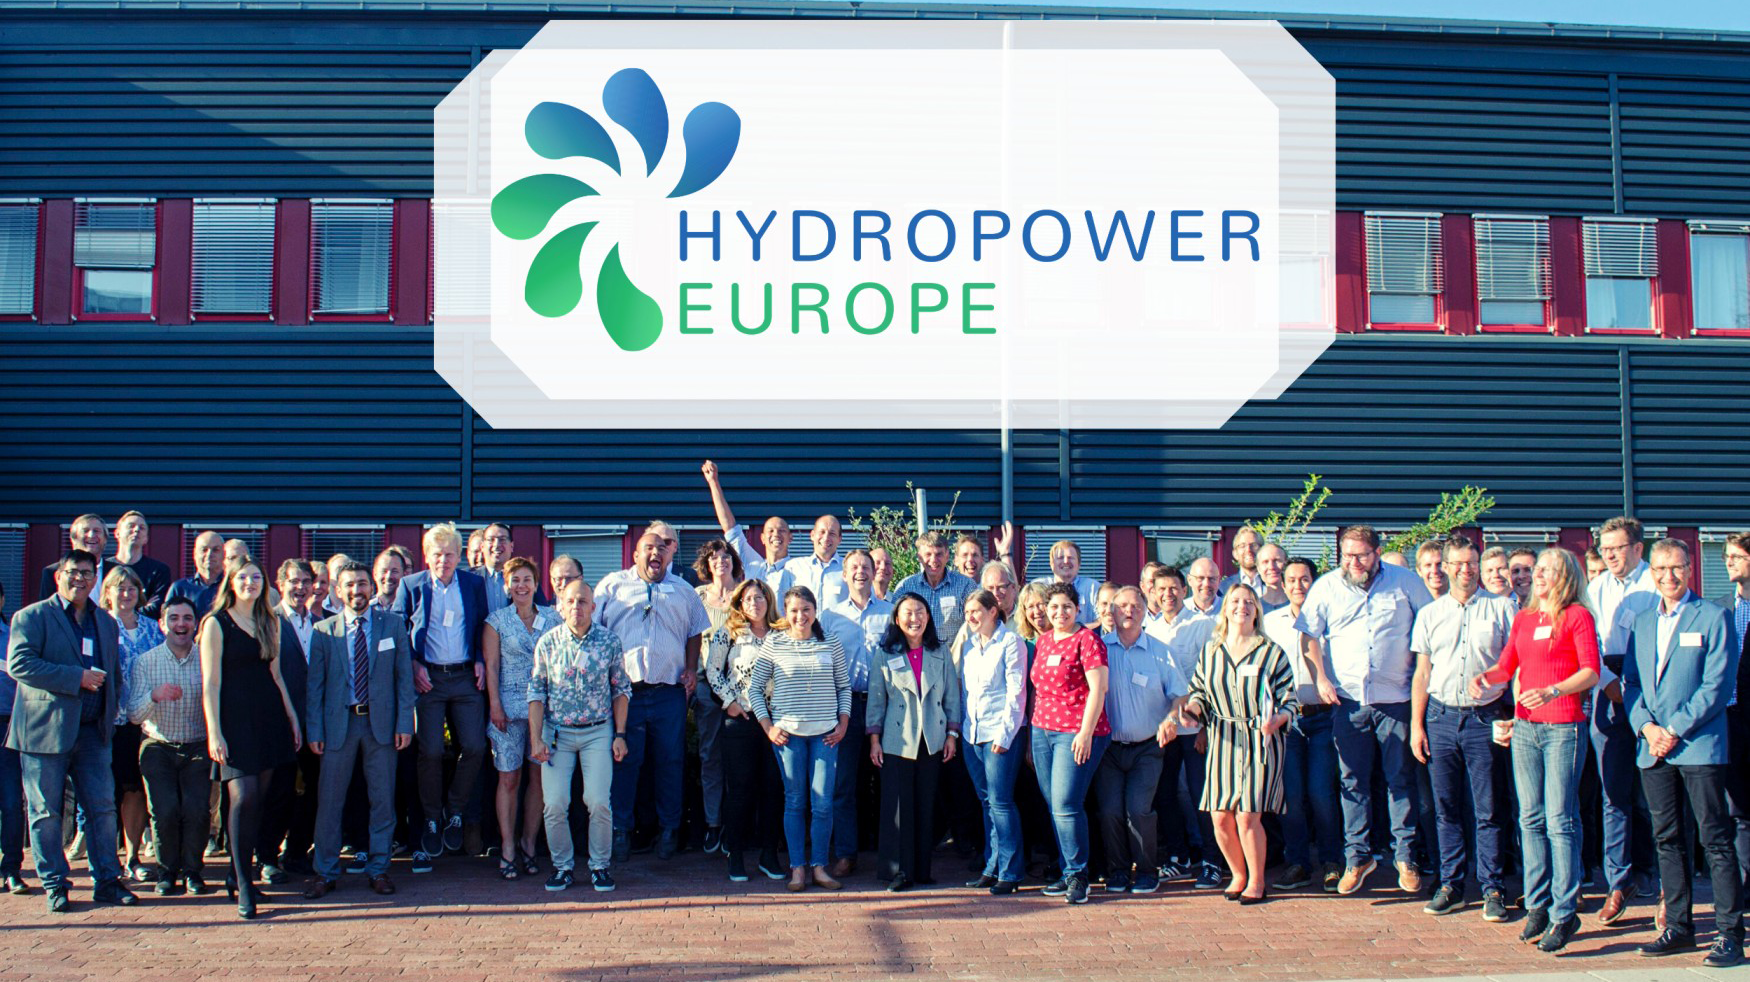 HYDROPOWER-EUROPE Brussels Workshop A CATALYST FOR CLEAN ENERGY TRANSITION